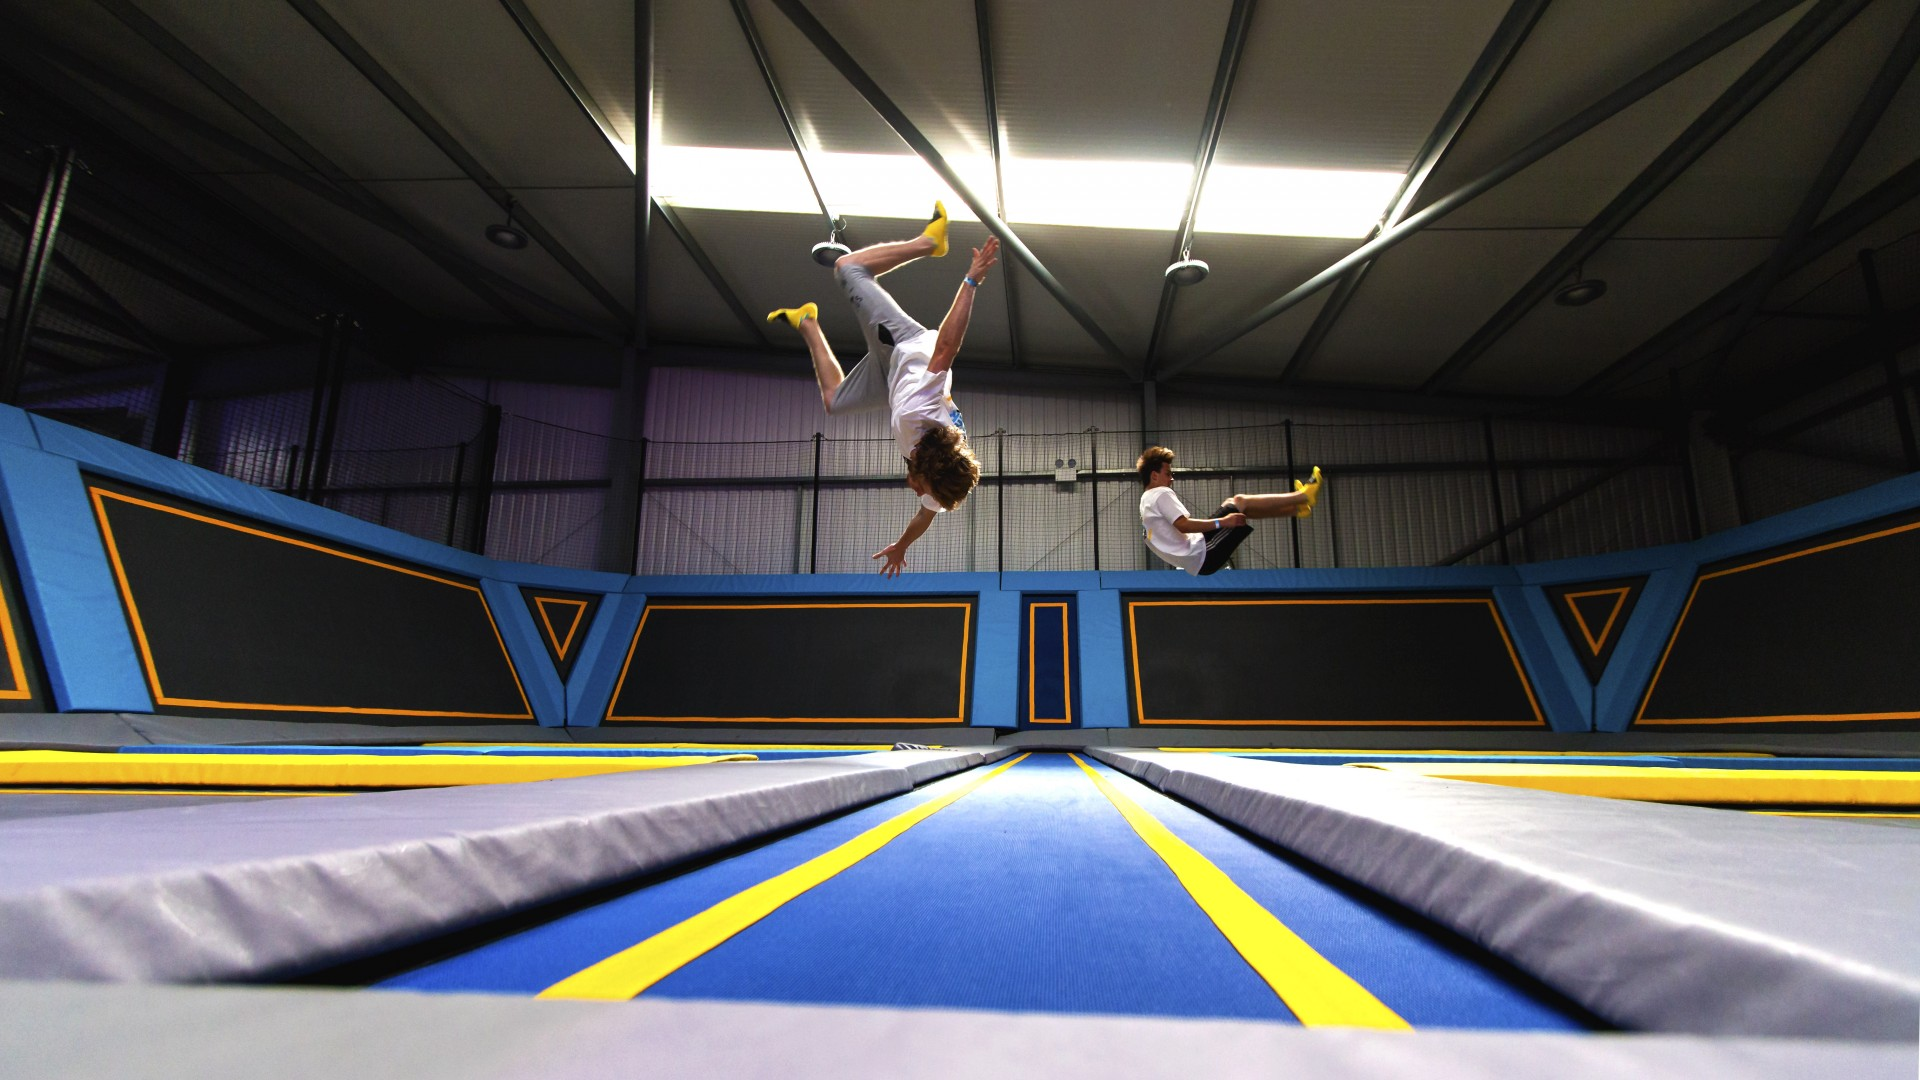 trampolining flips in the air